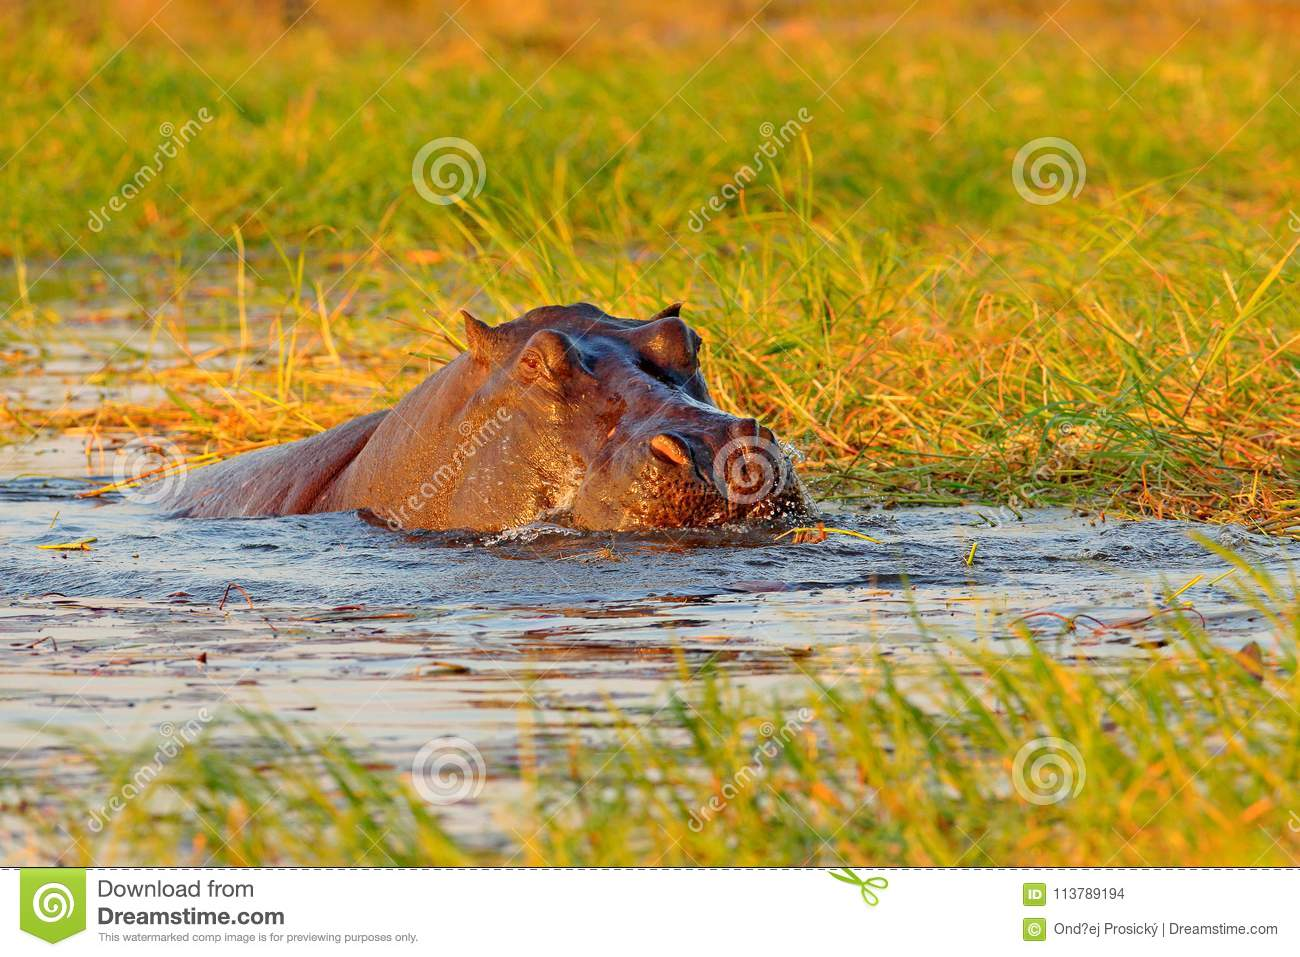 Hippo in river water. Wildlife Africa. African Hippopotamus, Hippopotamus amphibius capensis, with evening sun, animal in the natu